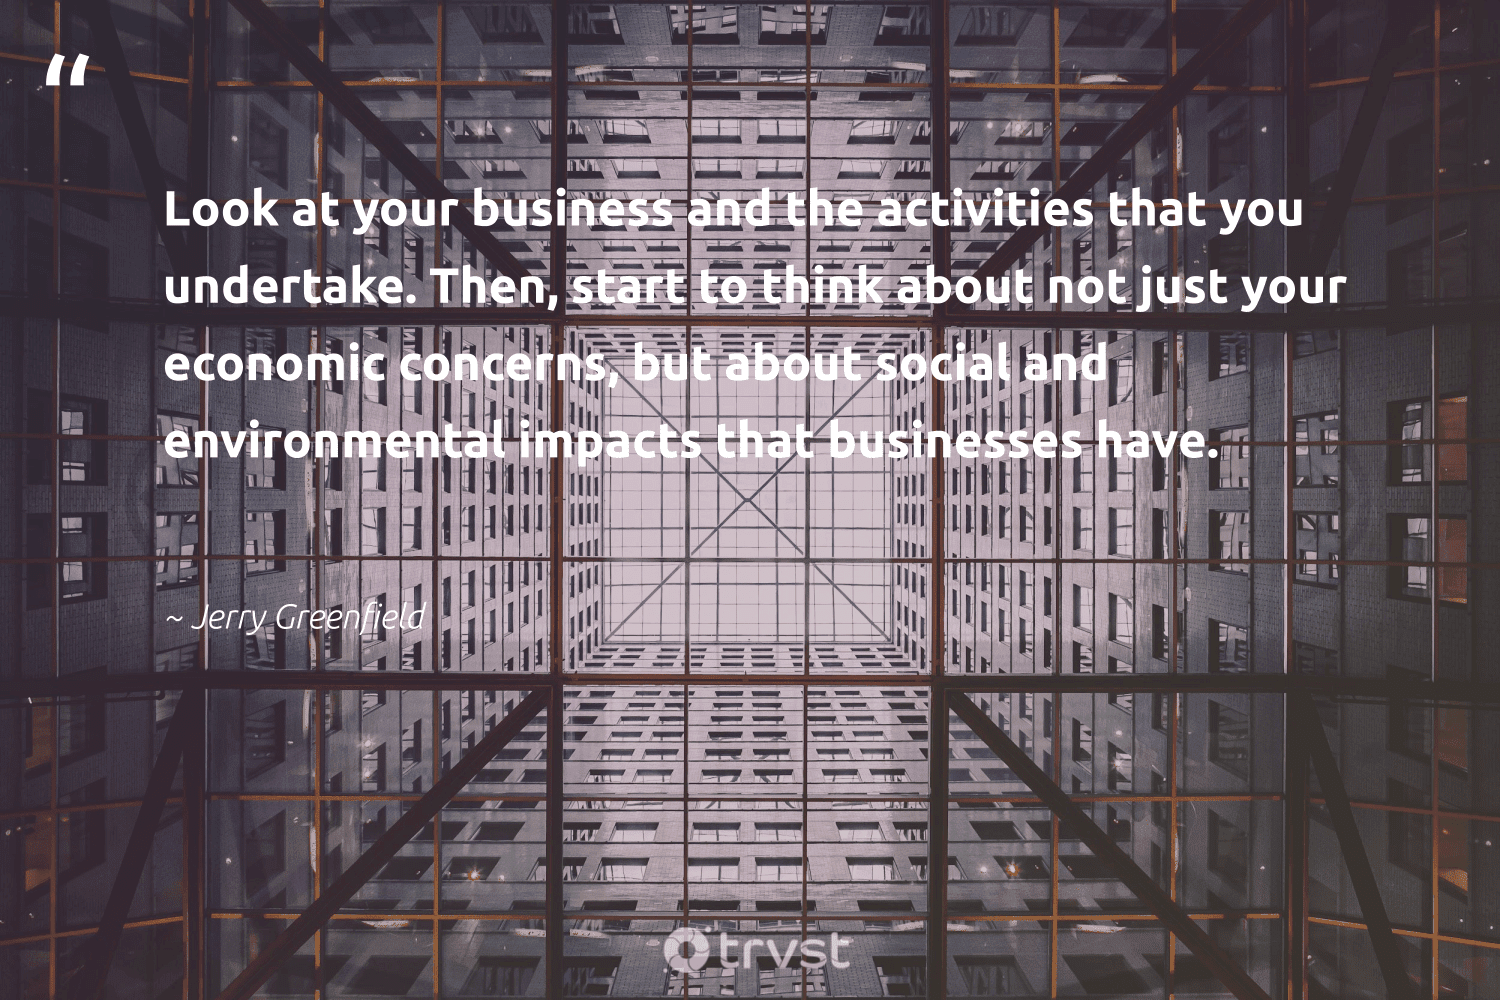 """""""Look at your business and the activities that you undertake. Then, start to think about not just your economic concerns, but about social and environmental impacts that businesses have.""""  - Jerry Greenfield #trvst #quotes #environmental #impacts #dogood #beinspired #socialchange #bethechange #ecoconscious #impact #giveback #dosomething"""